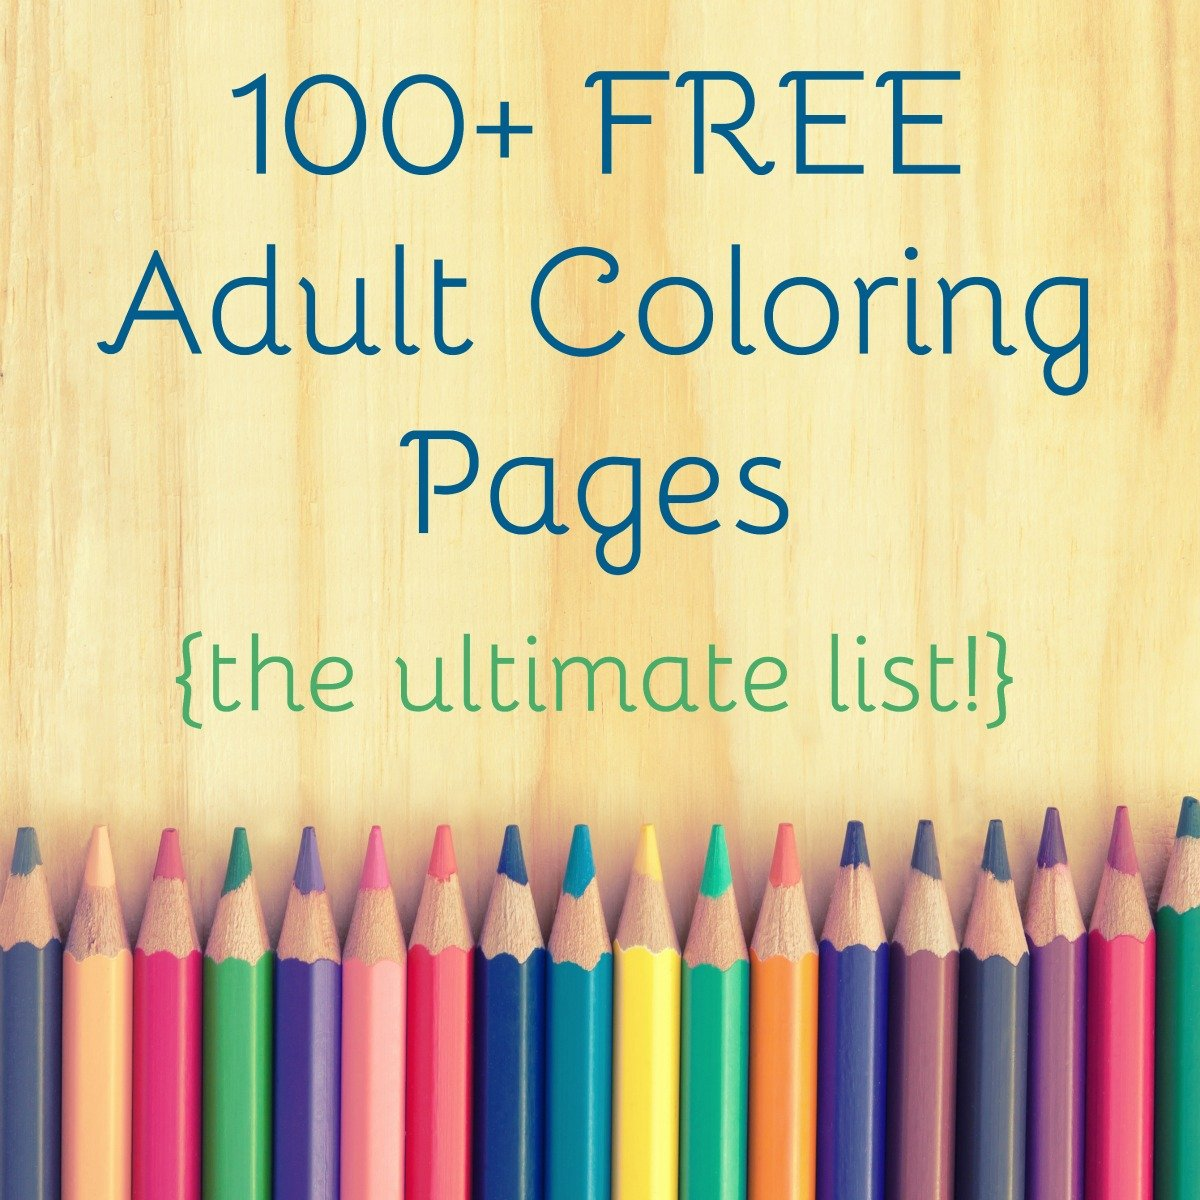 free coloring pages com printable 100 free adult coloring pages - Coloring Pictures Free